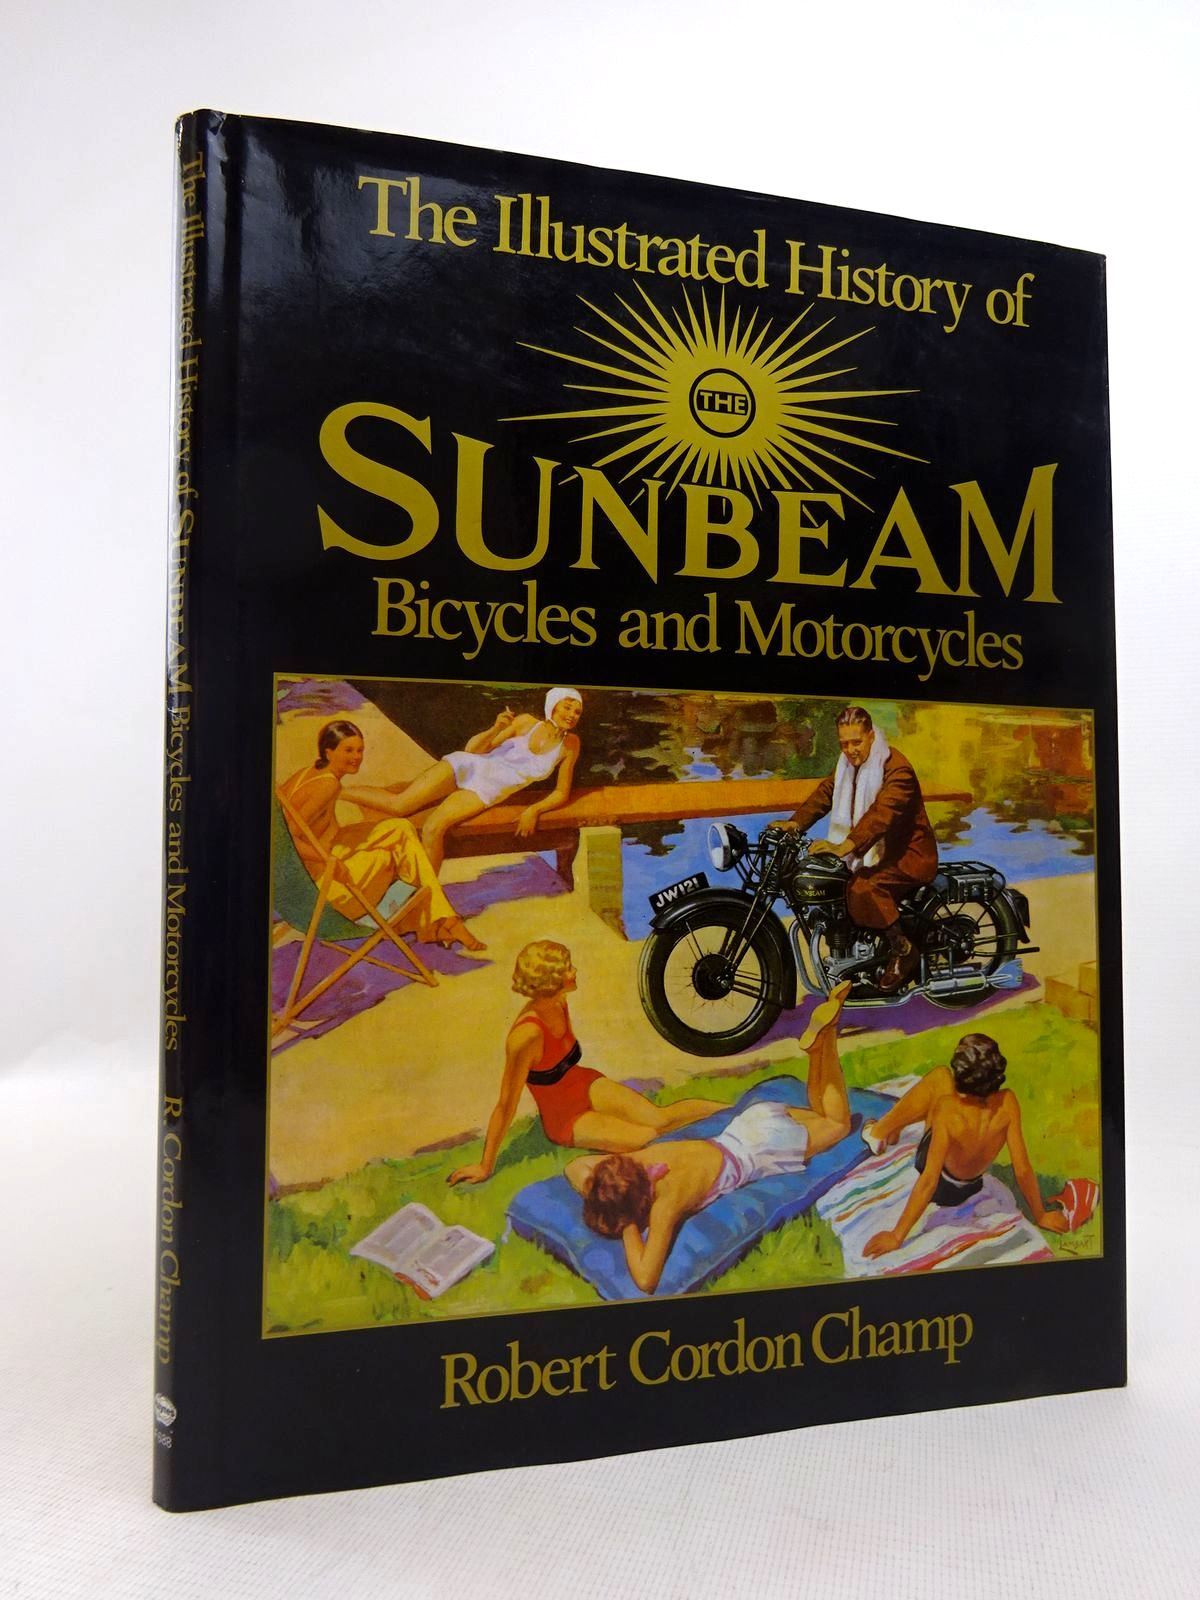 Photo of THE ILLUSTRATED HISTORY OF THE SUNBEAM BICYCLES AND MOTORCYCLES written by Champ, Robert Cordon published by Haynes Publishing Group, Foulis (STOCK CODE: 1817017)  for sale by Stella & Rose's Books